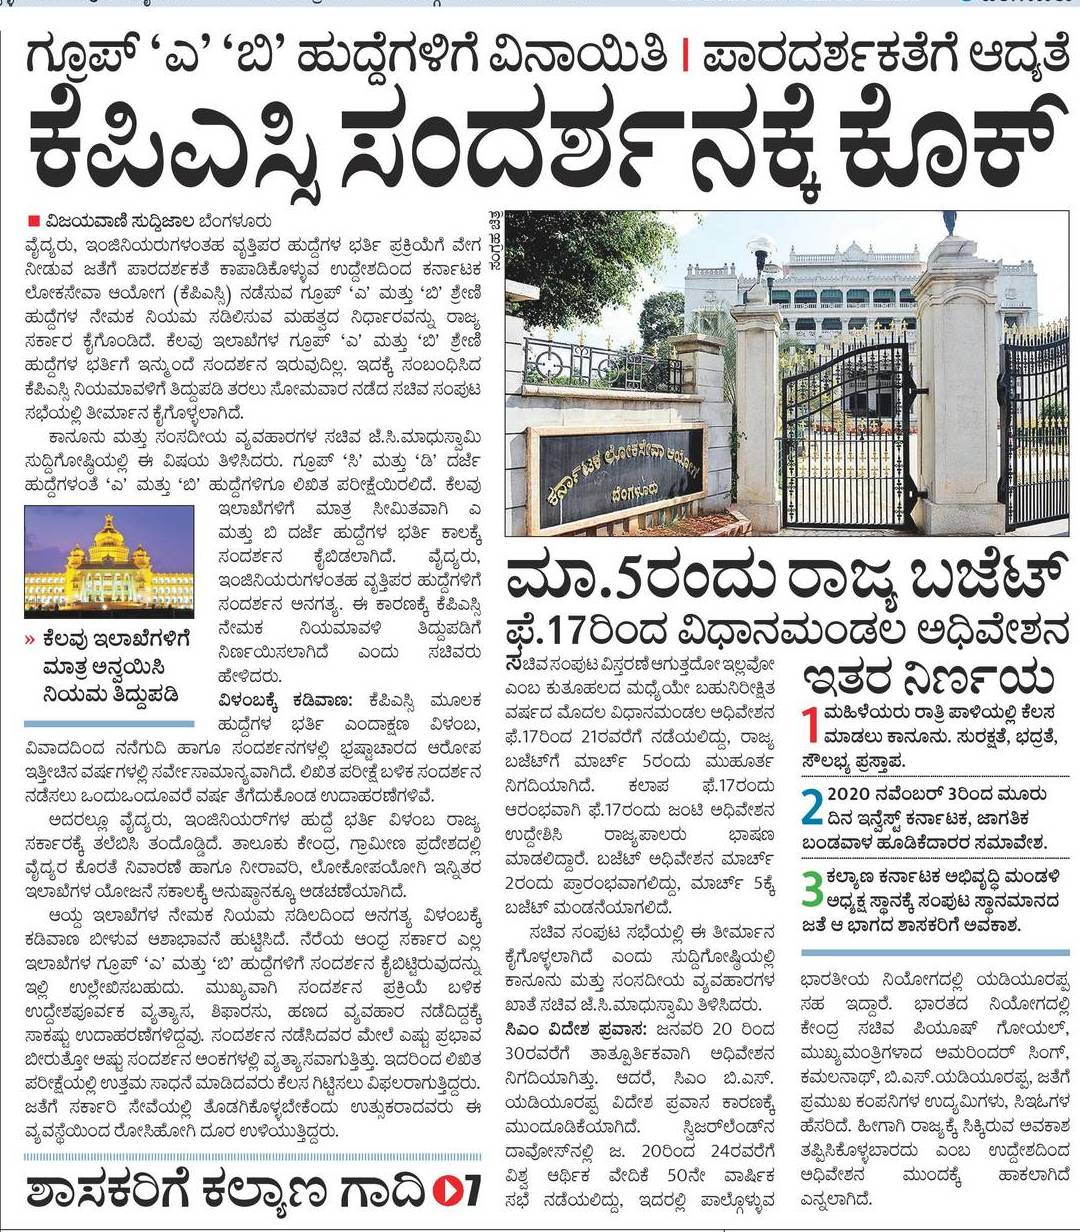 31-12-2019 educational information and others news and today news papers